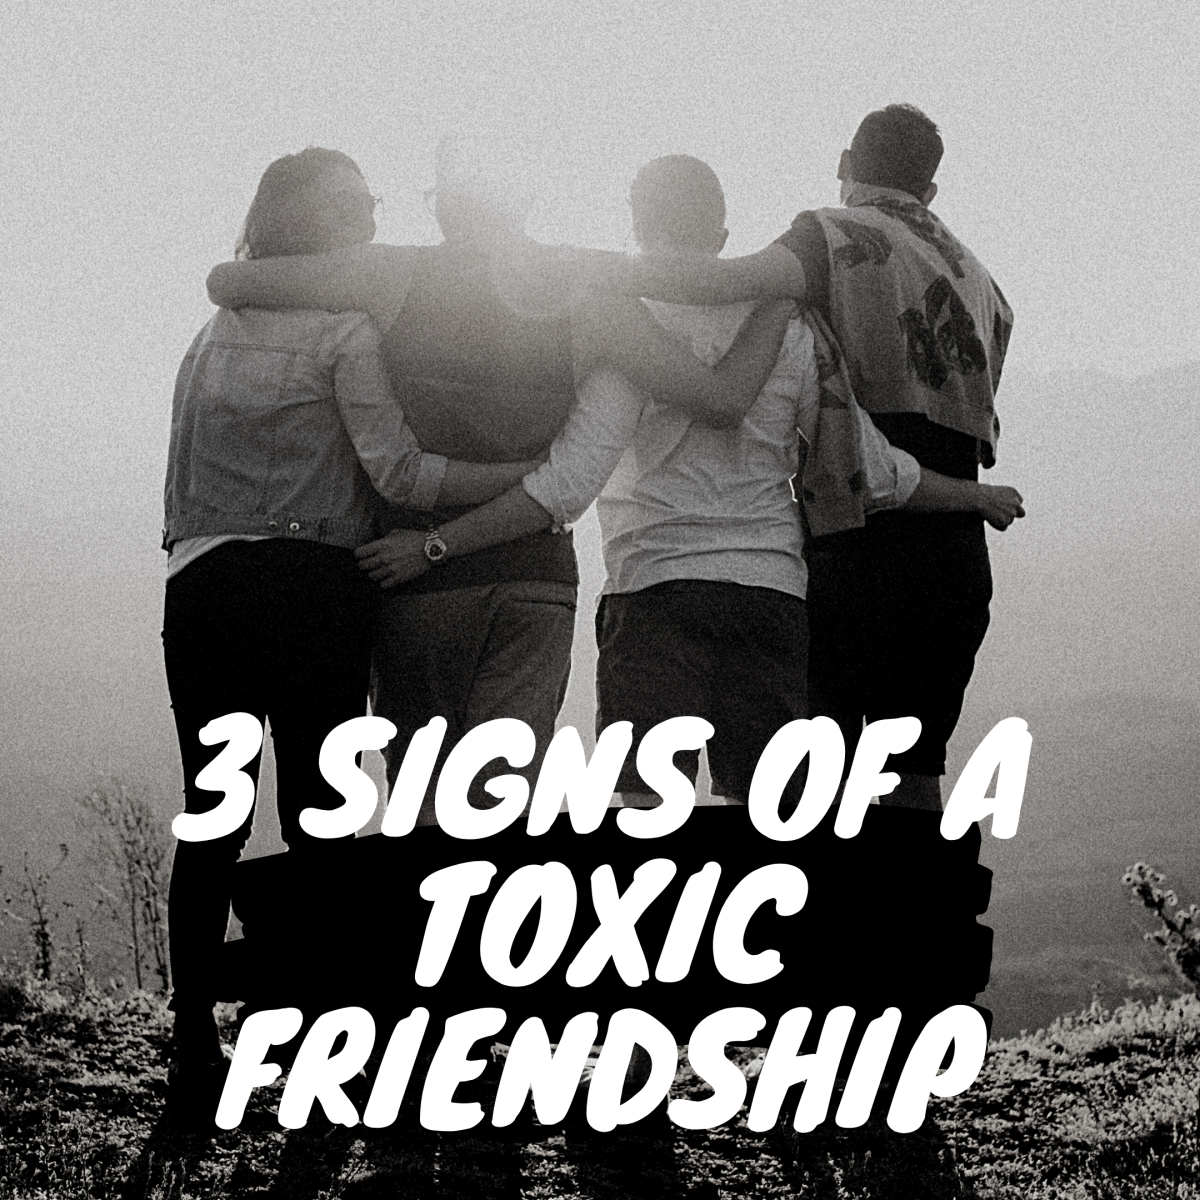 3 Signs of a Toxic Friendship